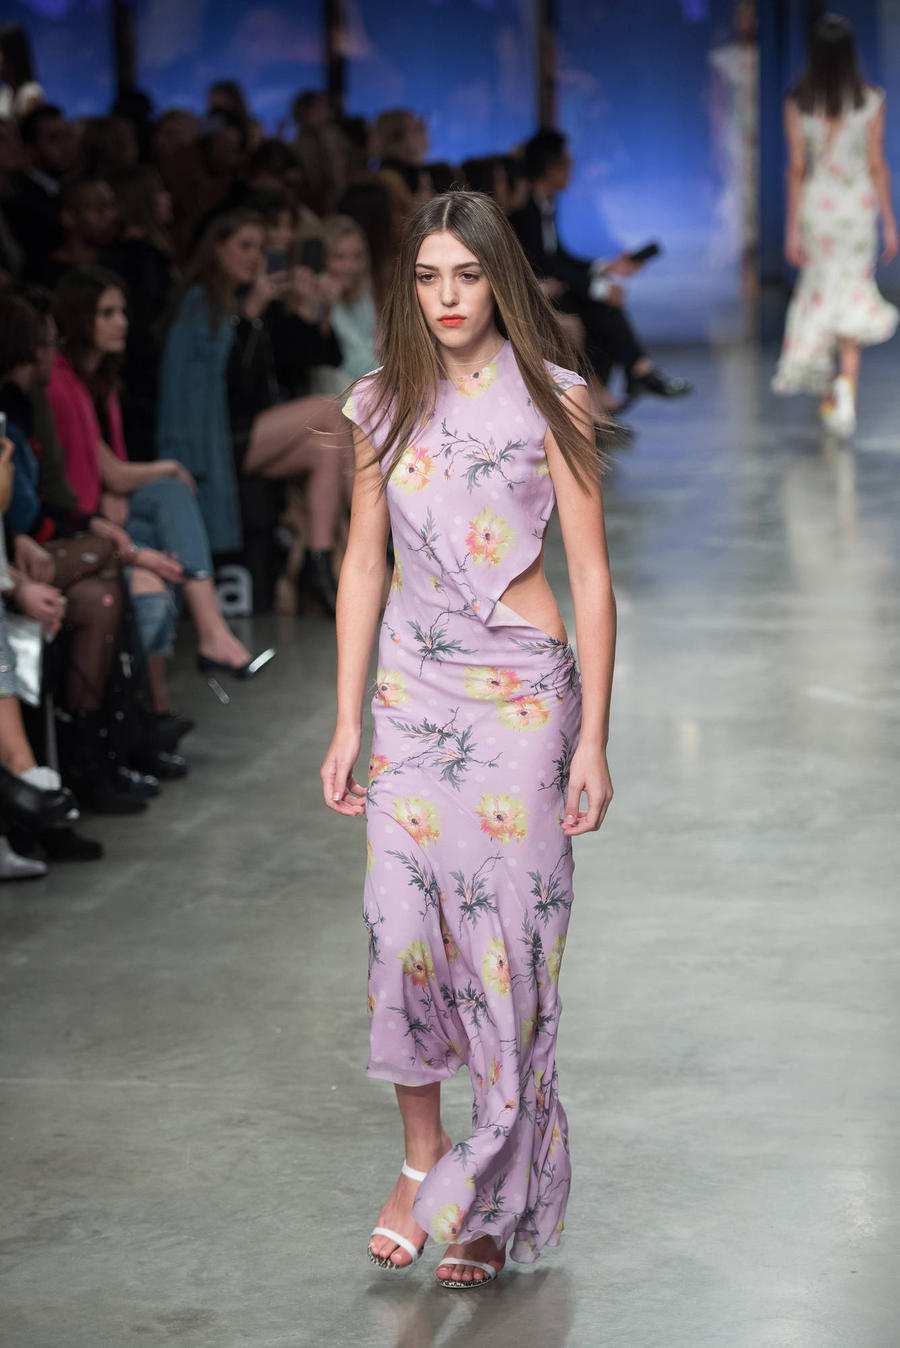 Sylvester Stallone'S Daughter Sistine Makes Runway Debut For Topshop